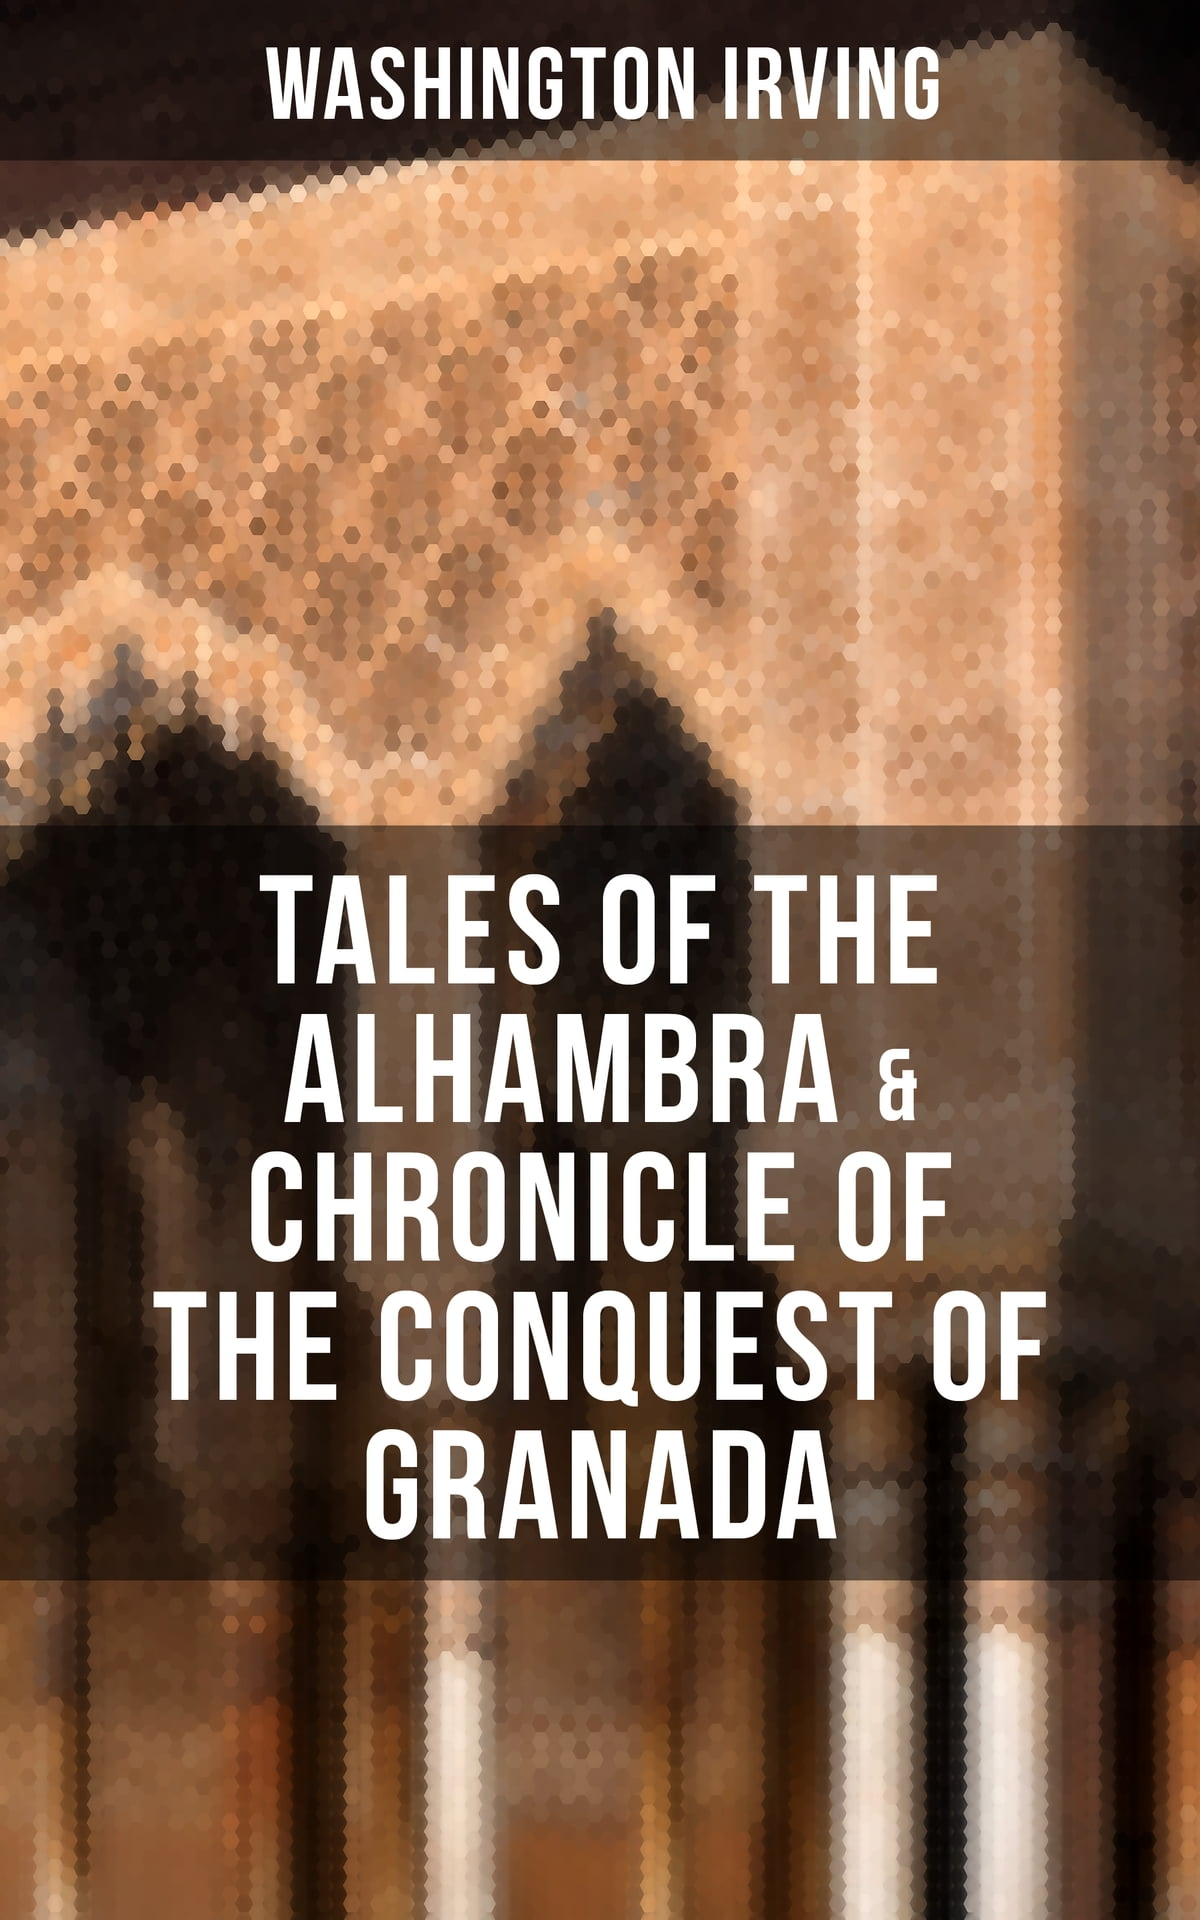 TALES OF THE ALHAMBRA & CHRONICLE OF THE CONQUEST OF GRANADA eBook by Washington  Irving - 9788027202515 | Rakuten Kobo